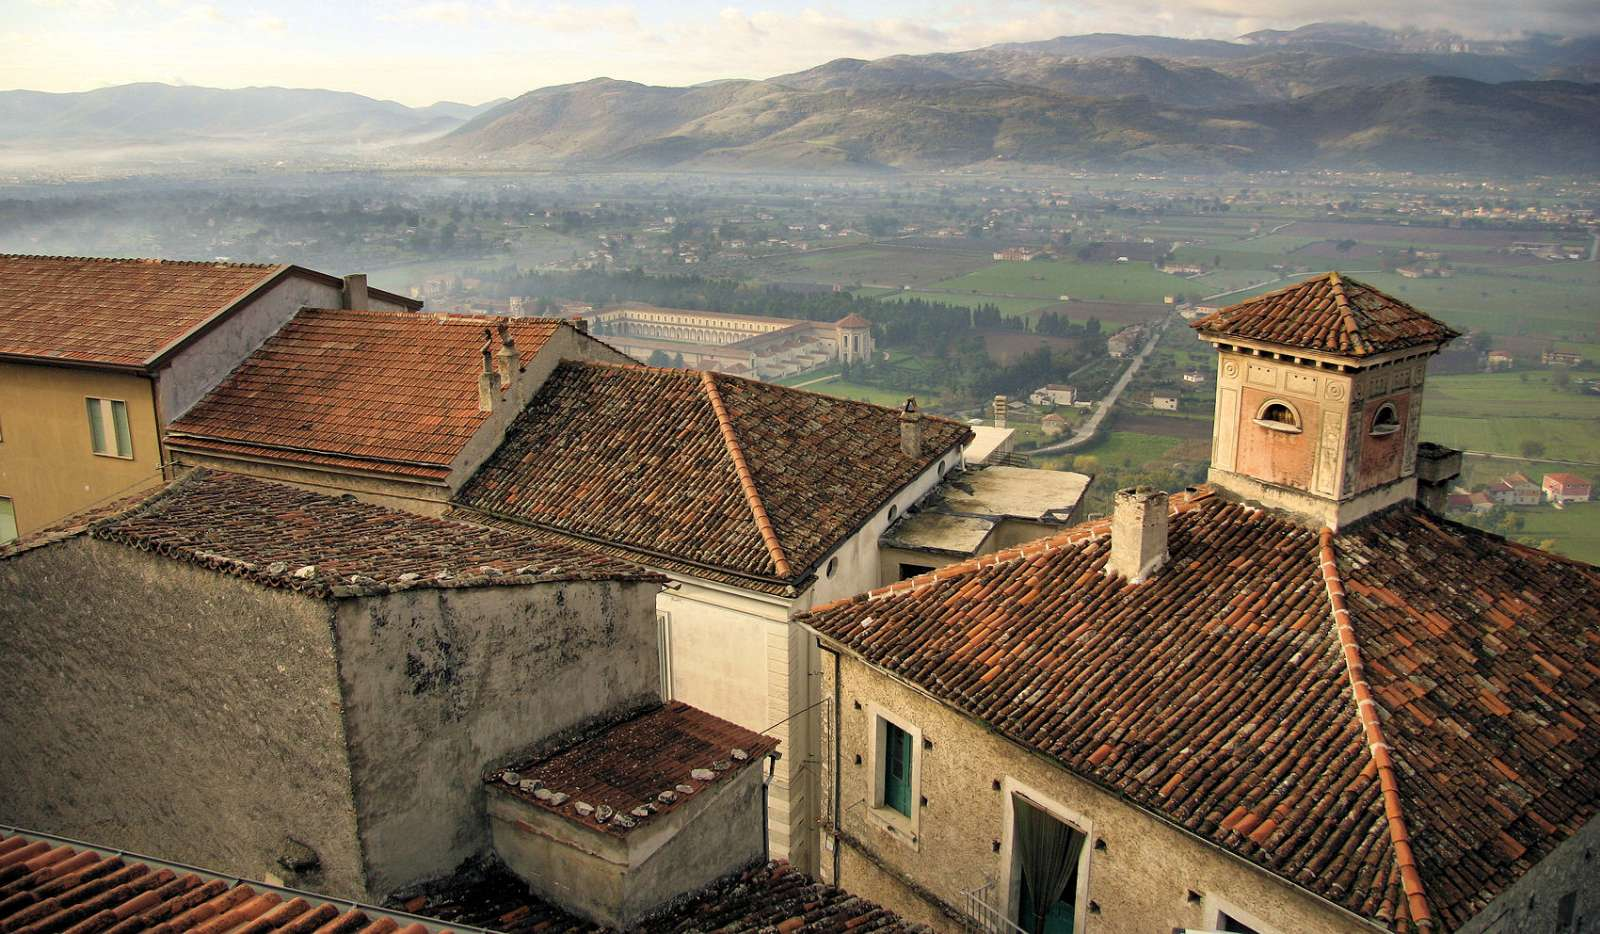 View from the city of Certosa di San Lorenzo and Vallo di Diano valley